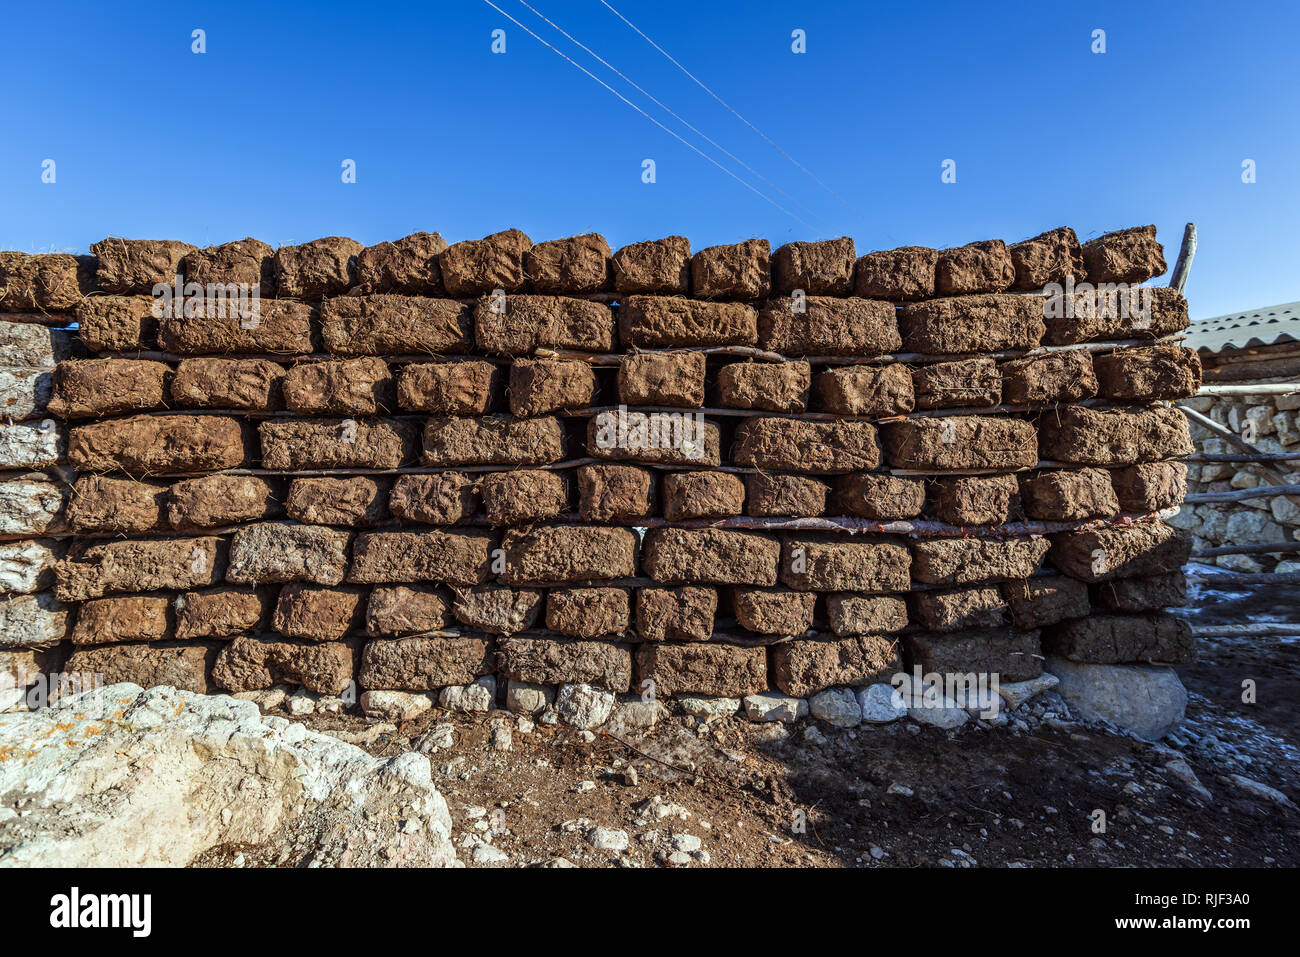 Dried blocks of manure, used for construction and for room heating - Stock Image